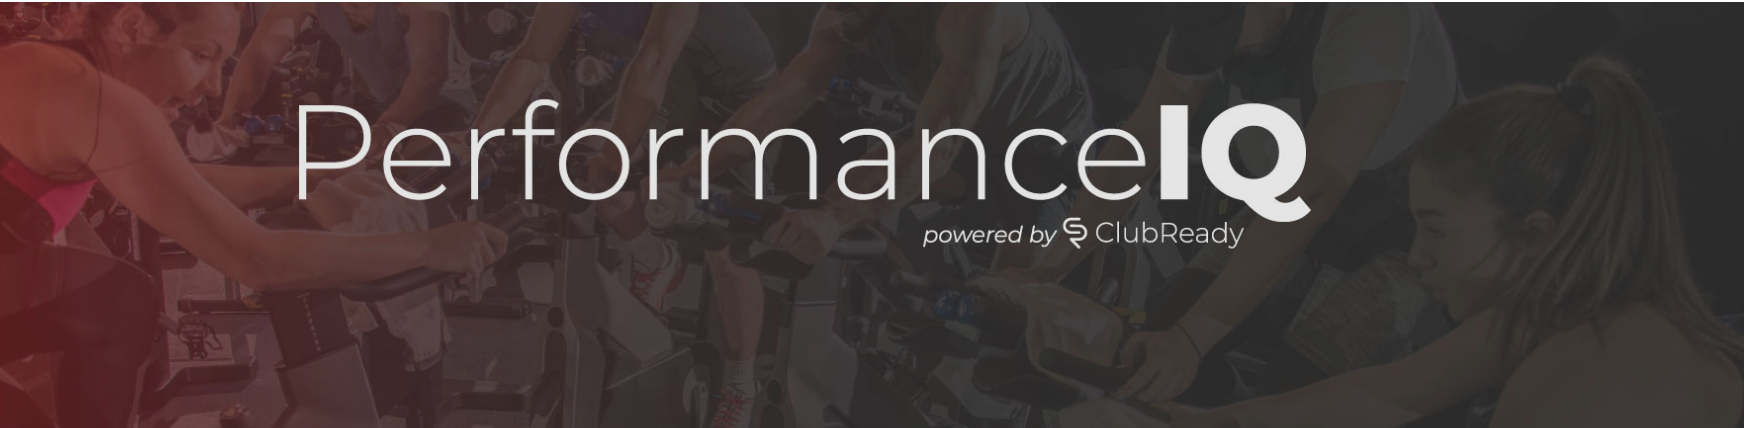 PerformanceIQ